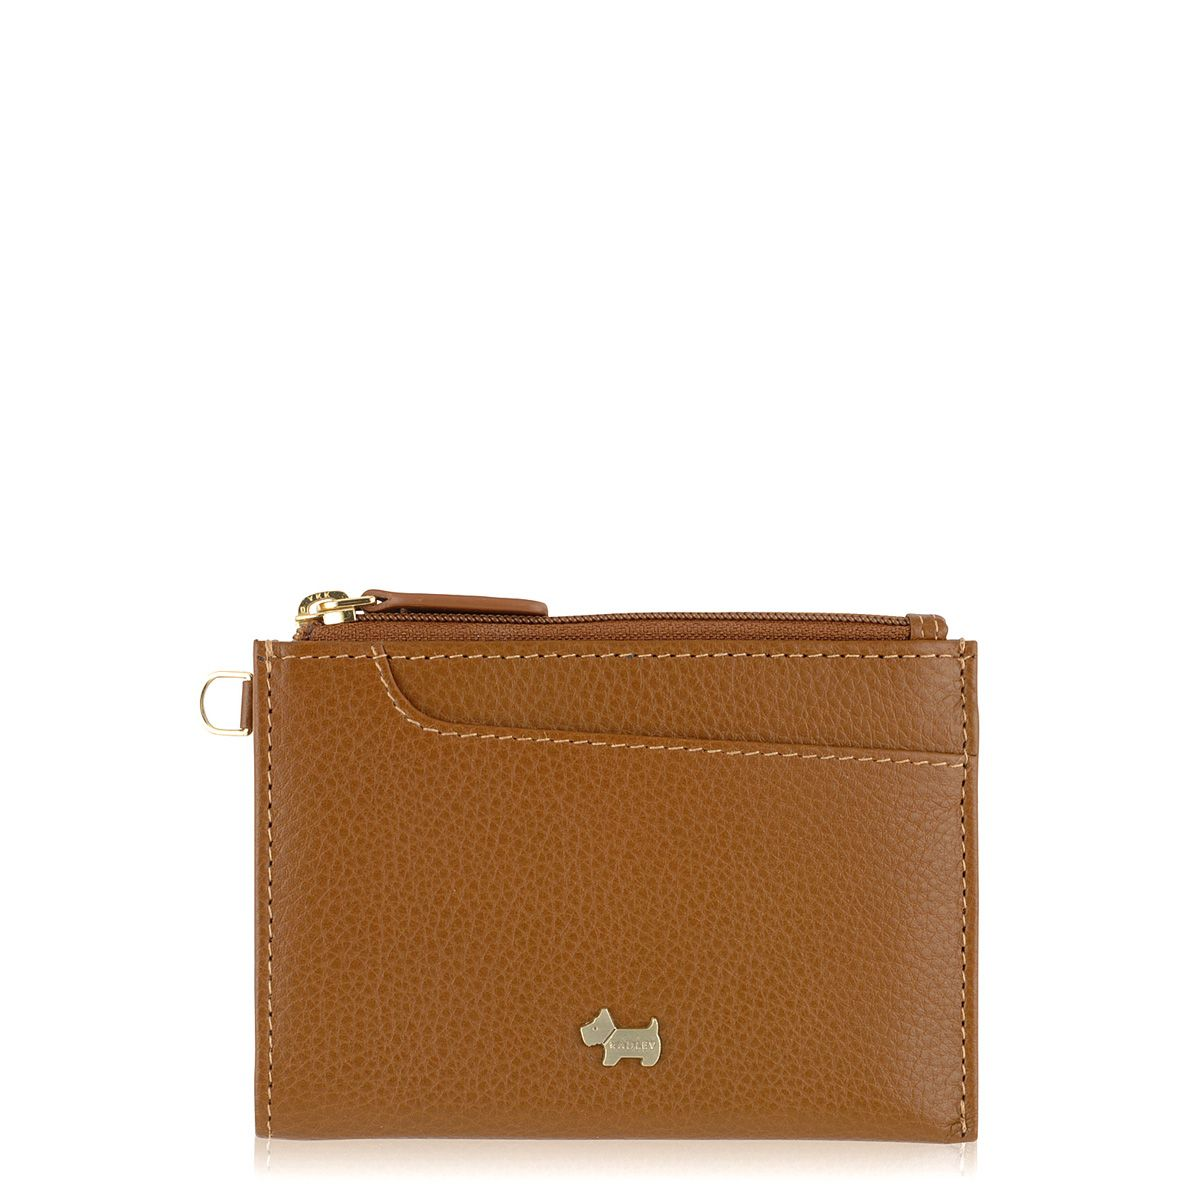 Radley Pocketbag small ziparound purse Tan